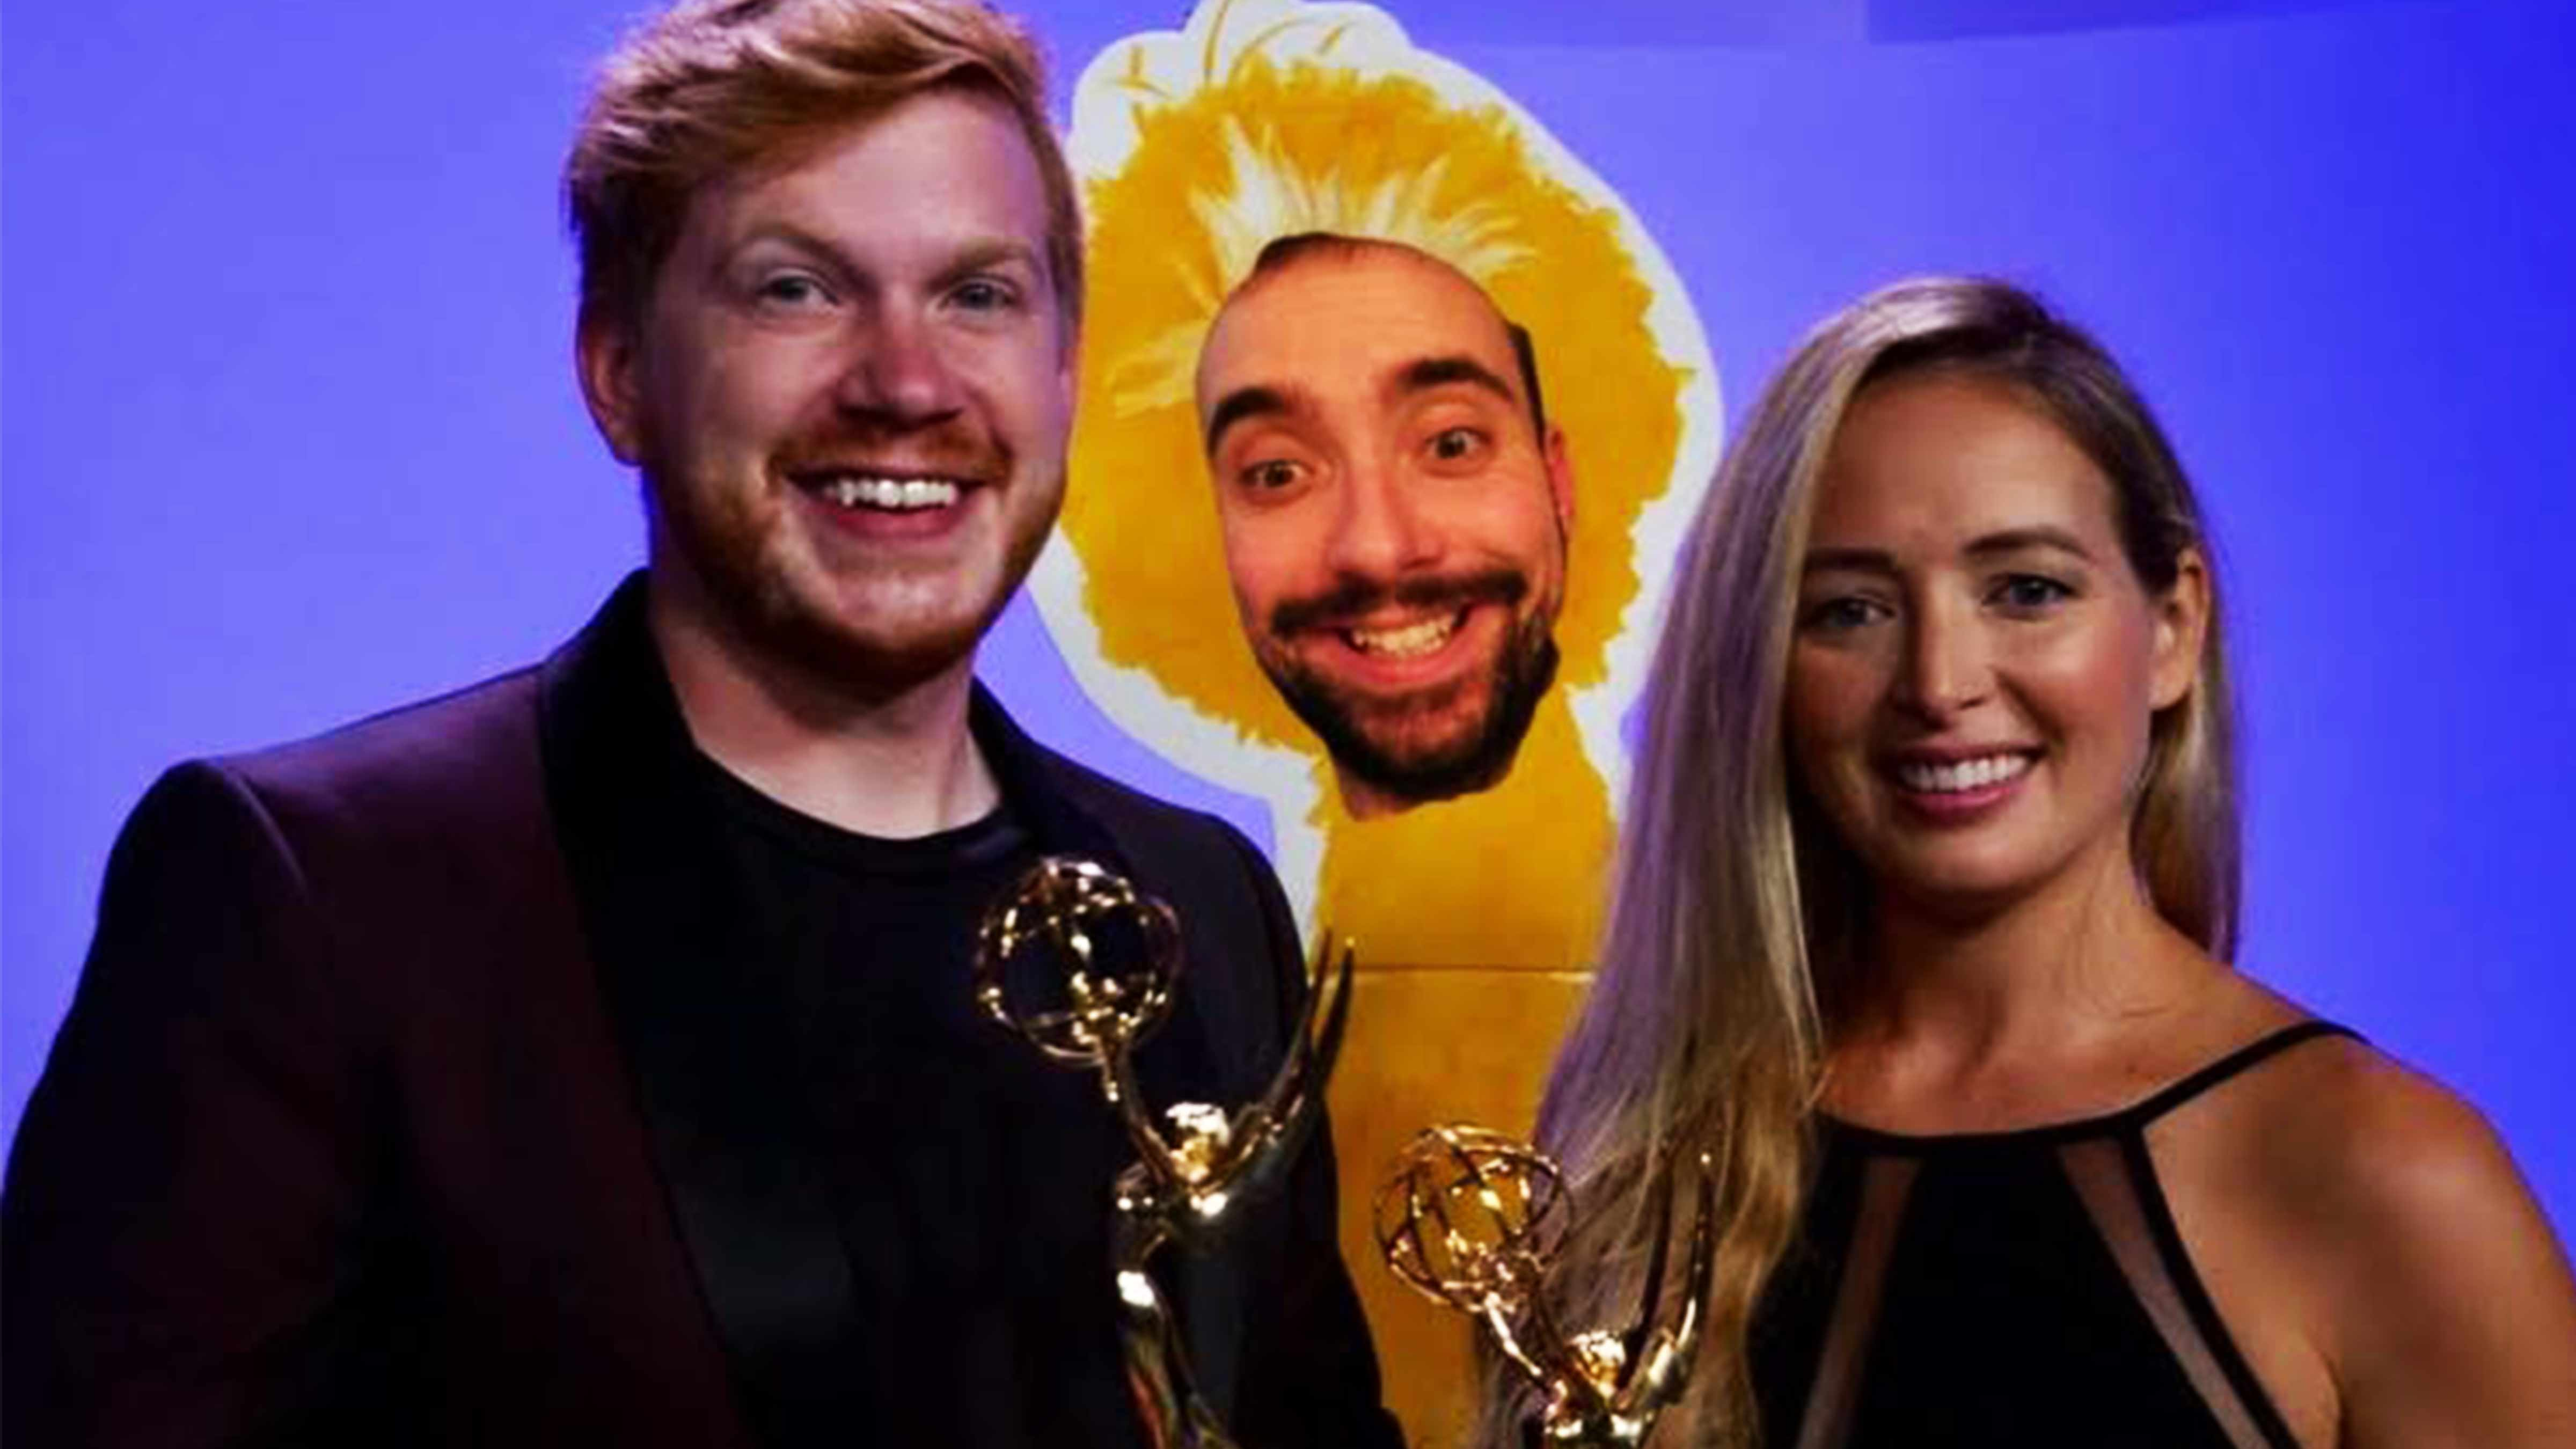 Postcards team of Ben Dempcy, Kris (Bigbird) Gieske and Dana Conroy picked up 4 new Emmy awards this past weekend.